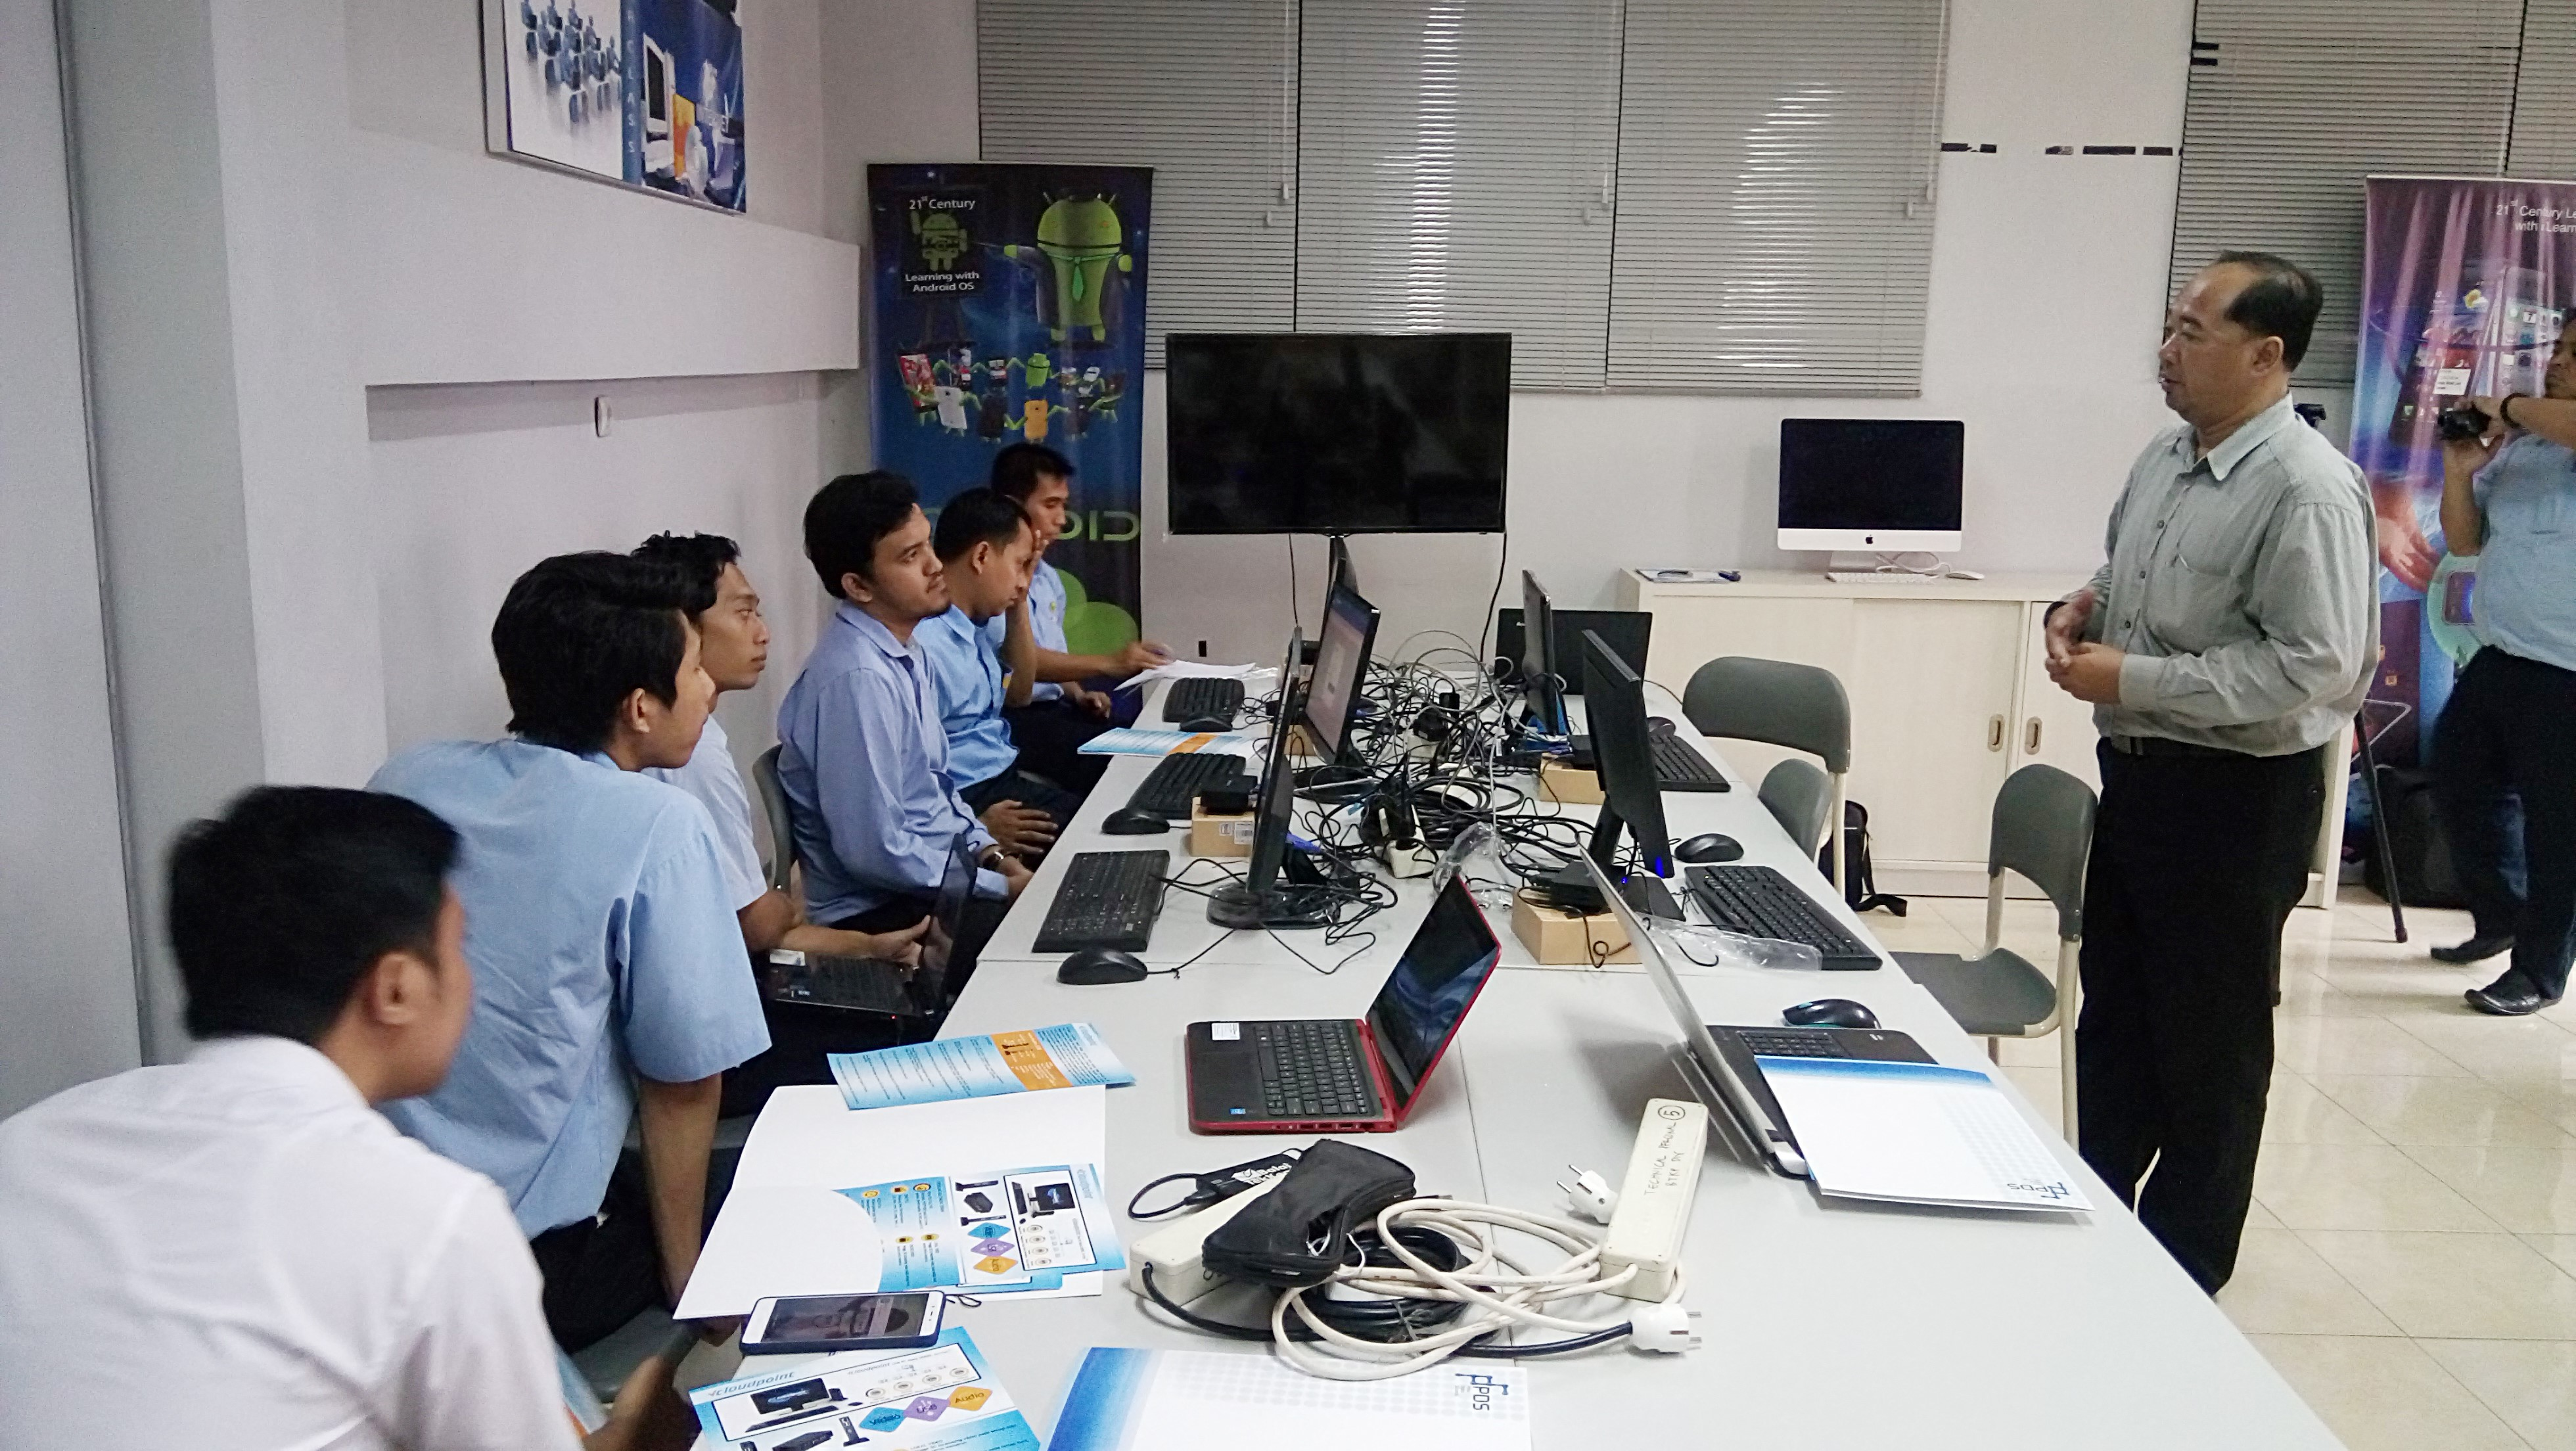 vCloudPoint in indonesia